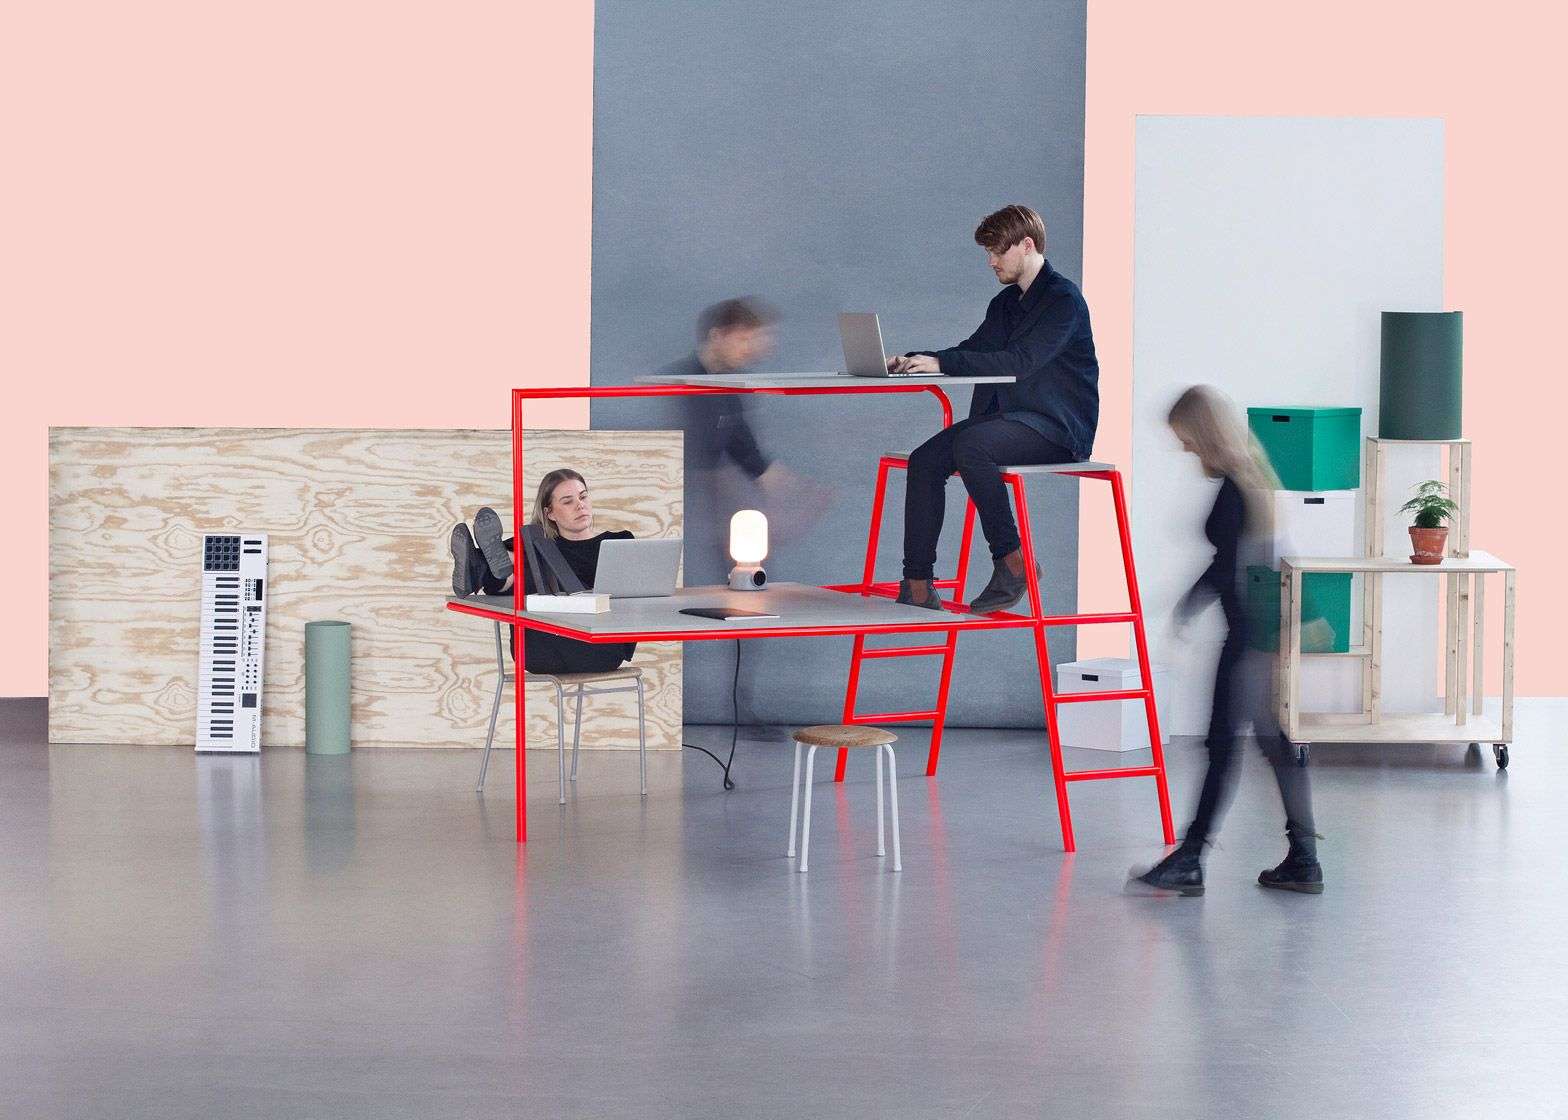 Charming Alternative Office Furniture By Rolf Hay And Lund University Students